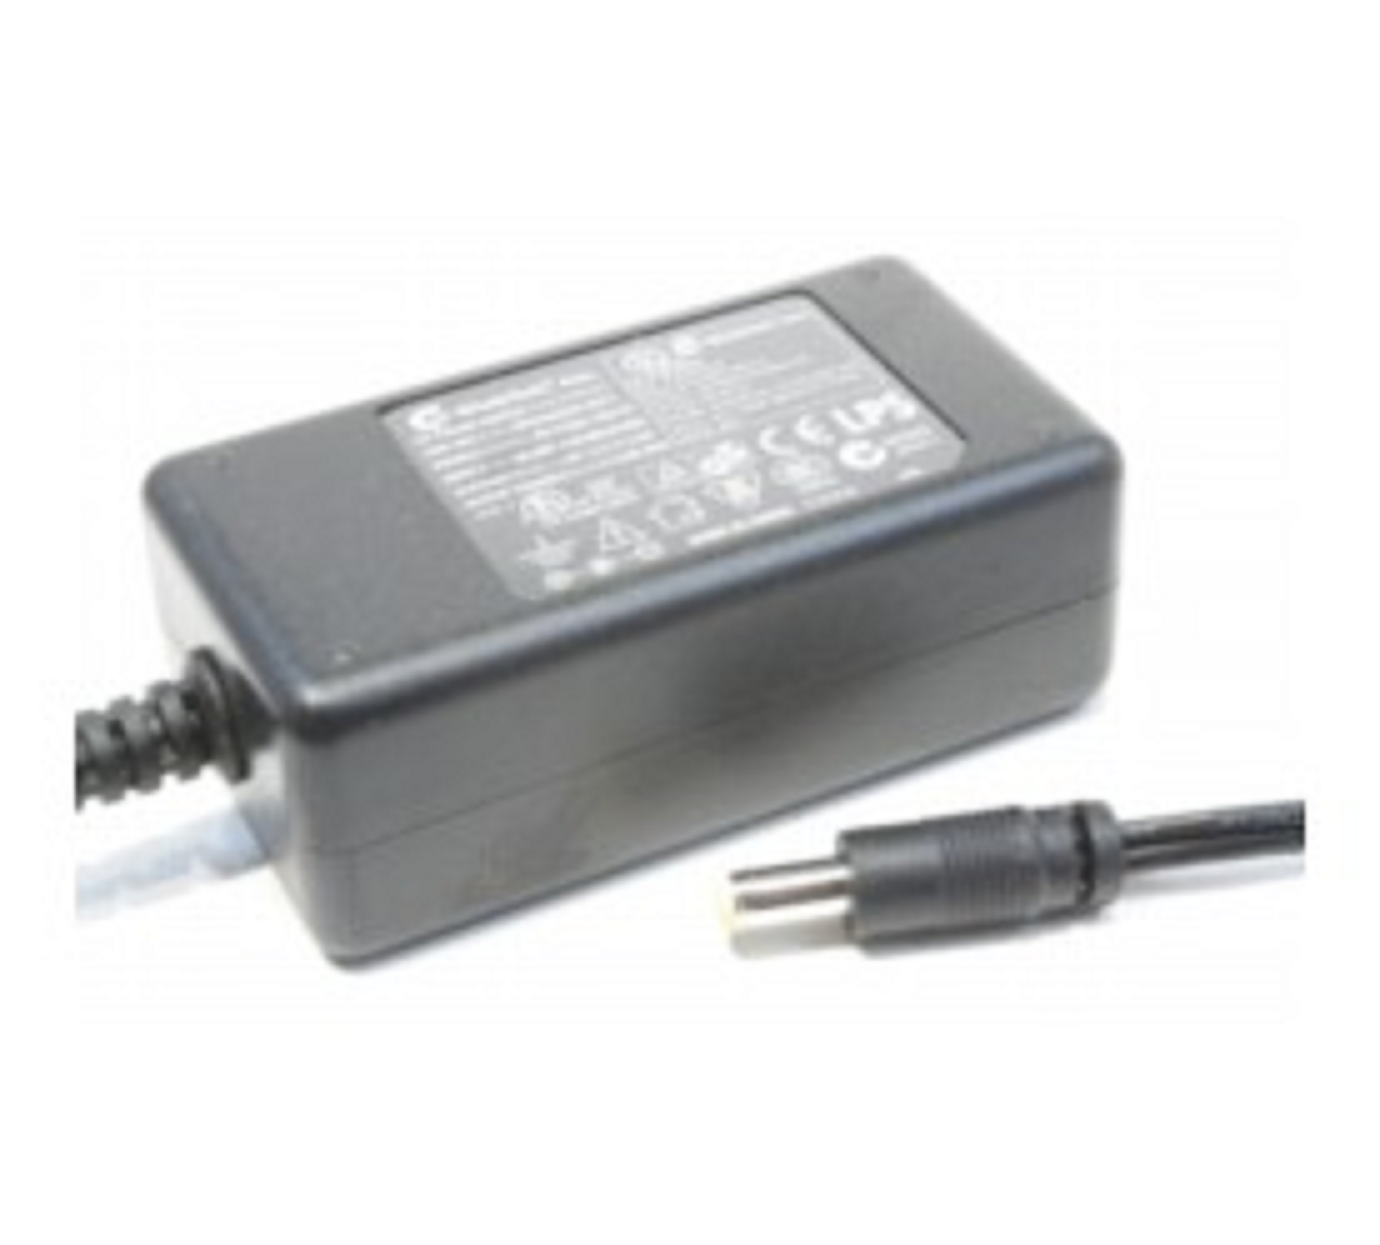 Regulated Table Top Power Supply AC 110V 120V TO 5V DC 2A 10W 2.1mmx5.5mm